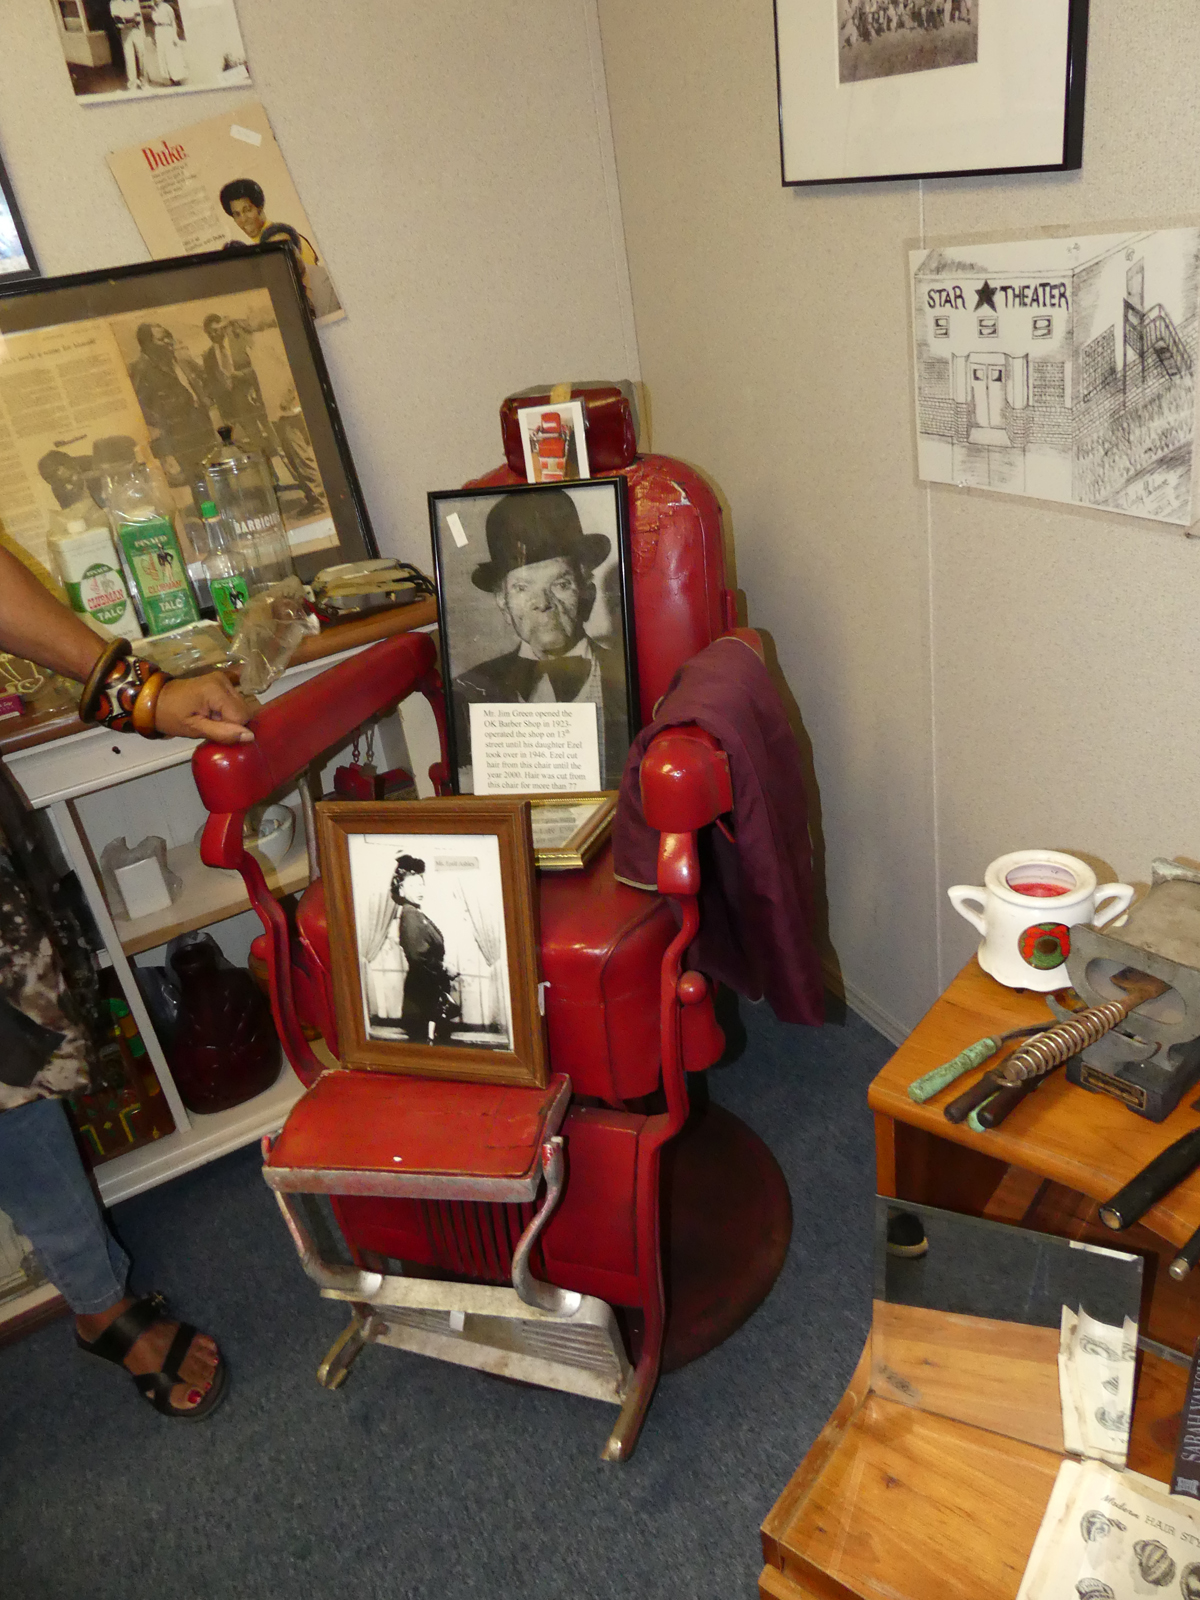 Barber chair donated by OK Barber Shop. Photo: Kathleen Walls